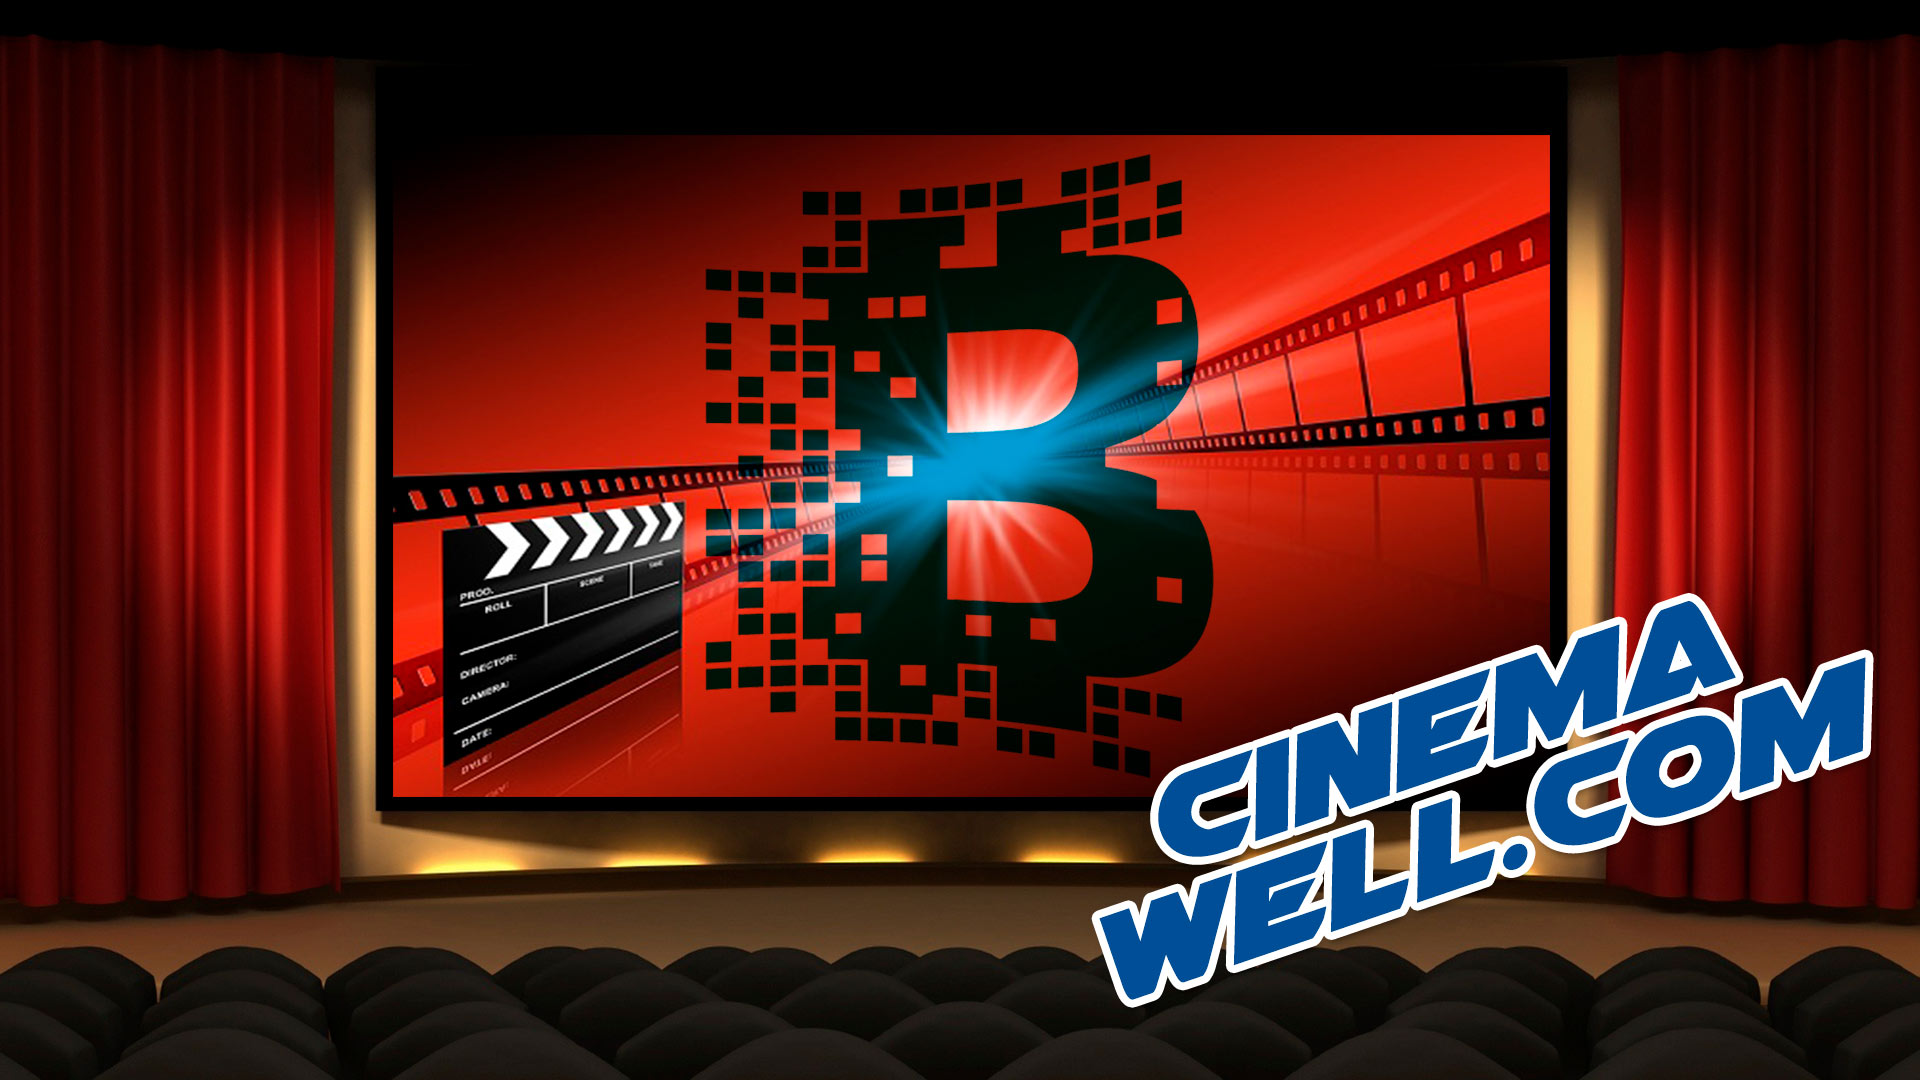 plataforma blockchain cinemawell - Artech Digital